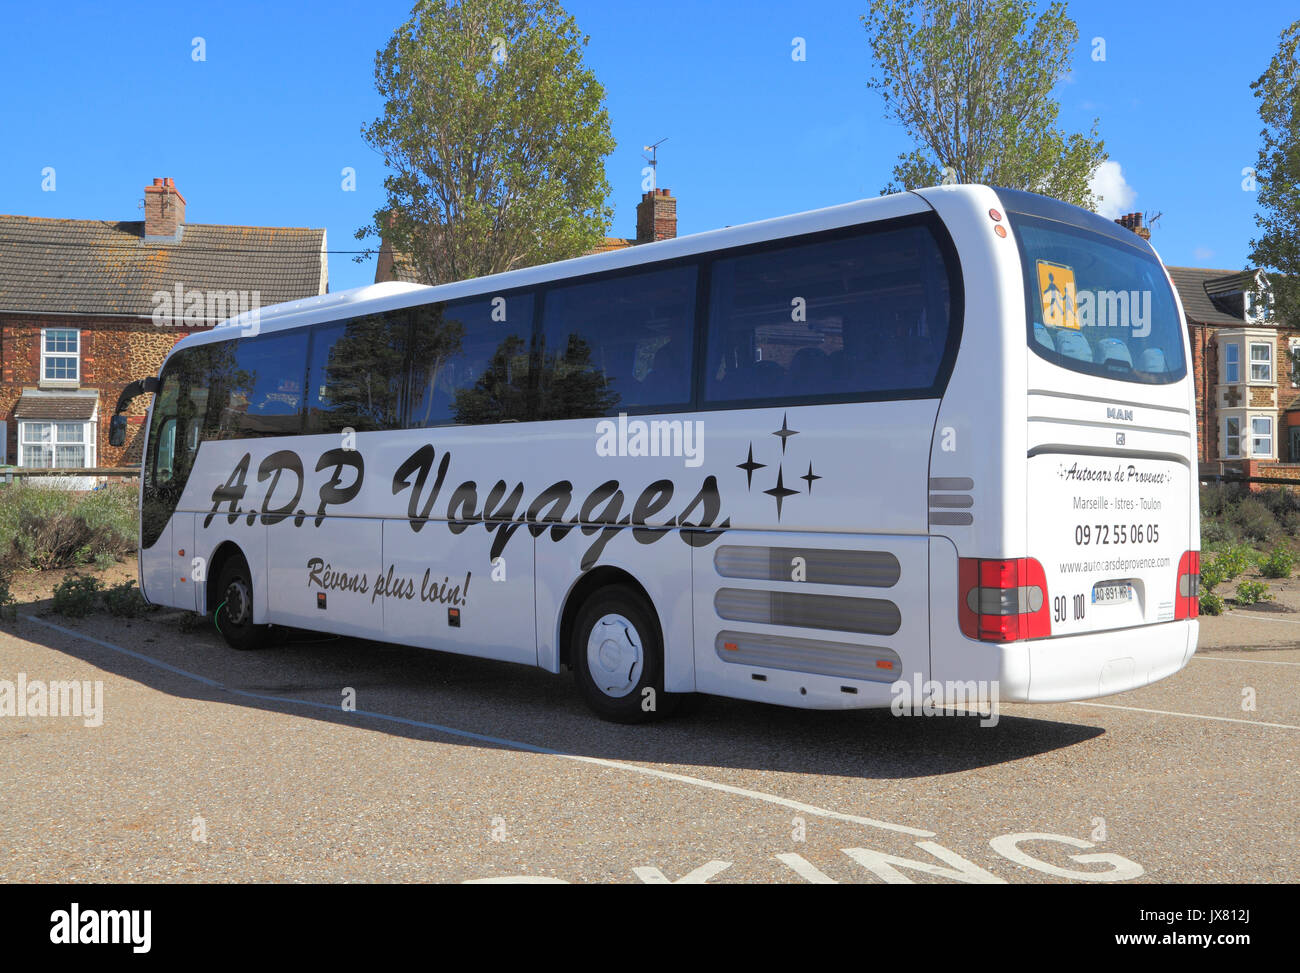 A. D. P. Voyages, Autocars de Provence, France, coach, coaches, holidays, excusion, excursions, travel company, companies, trips, transport, England, - Stock Image